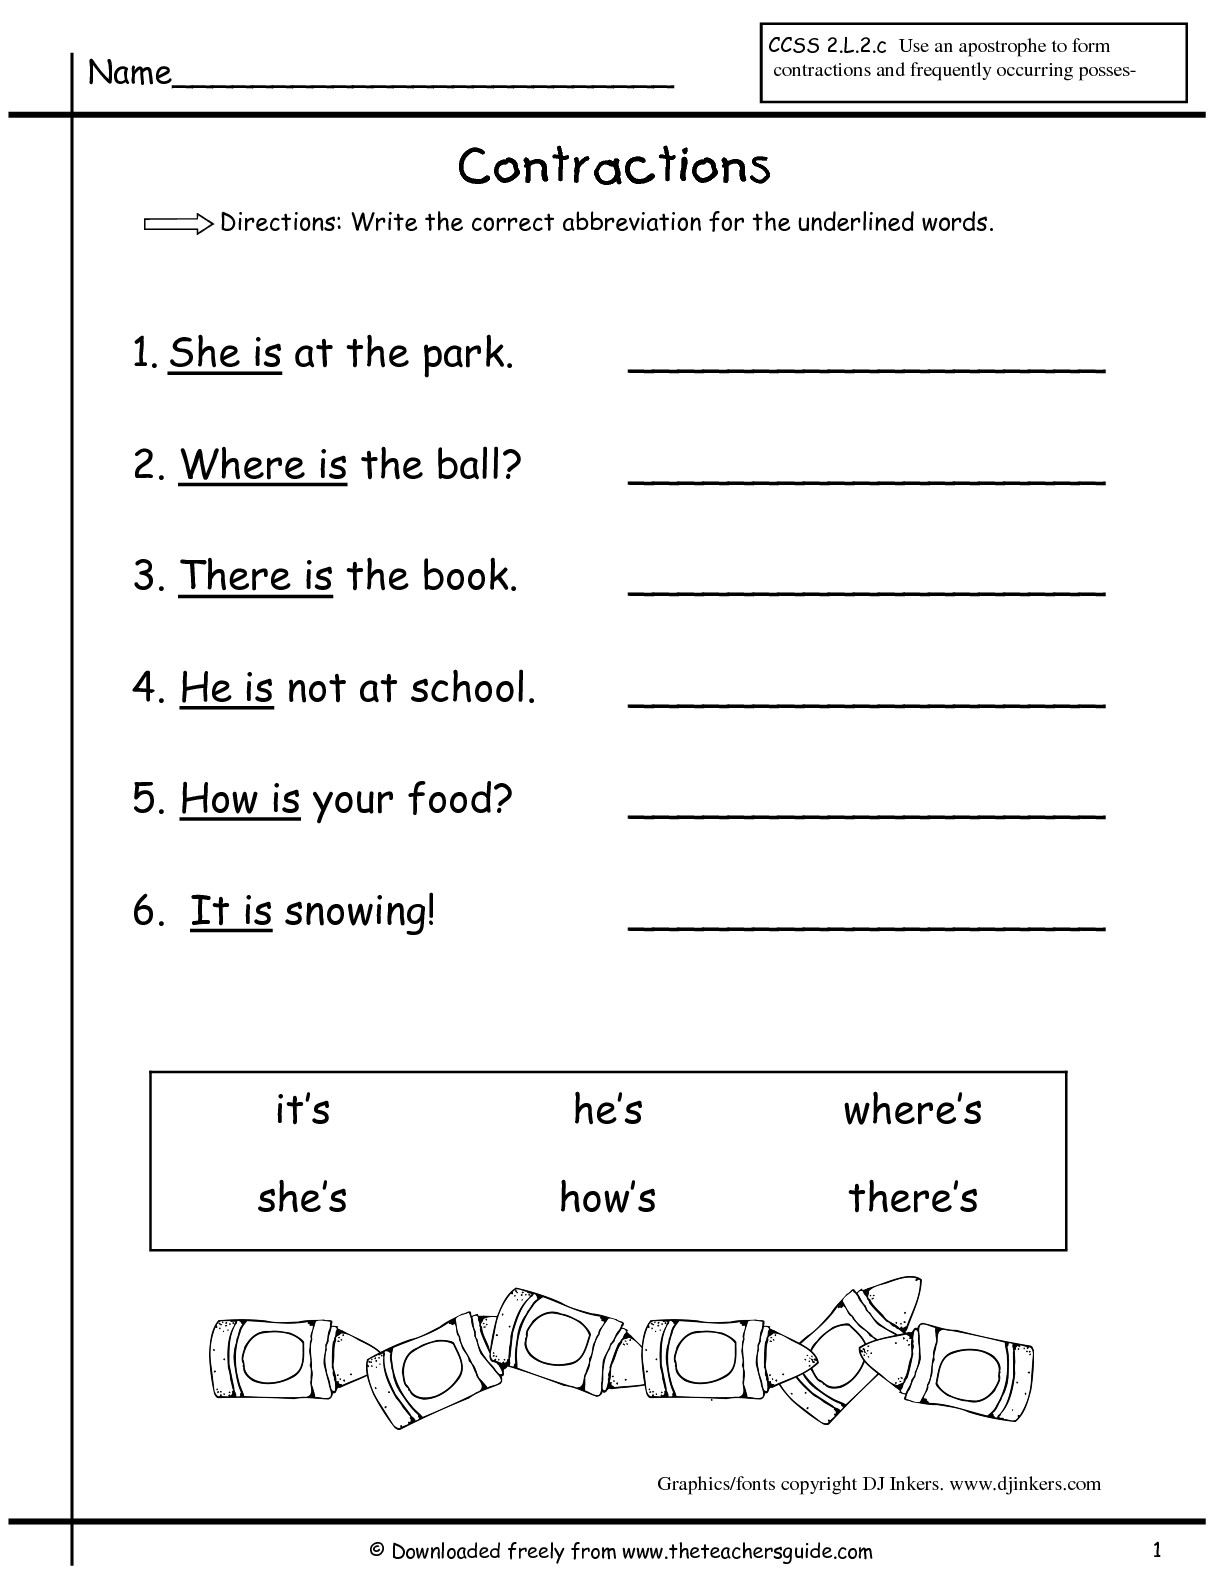 17 Best Images Of 3rd Grade Worksheets Contraction Practice